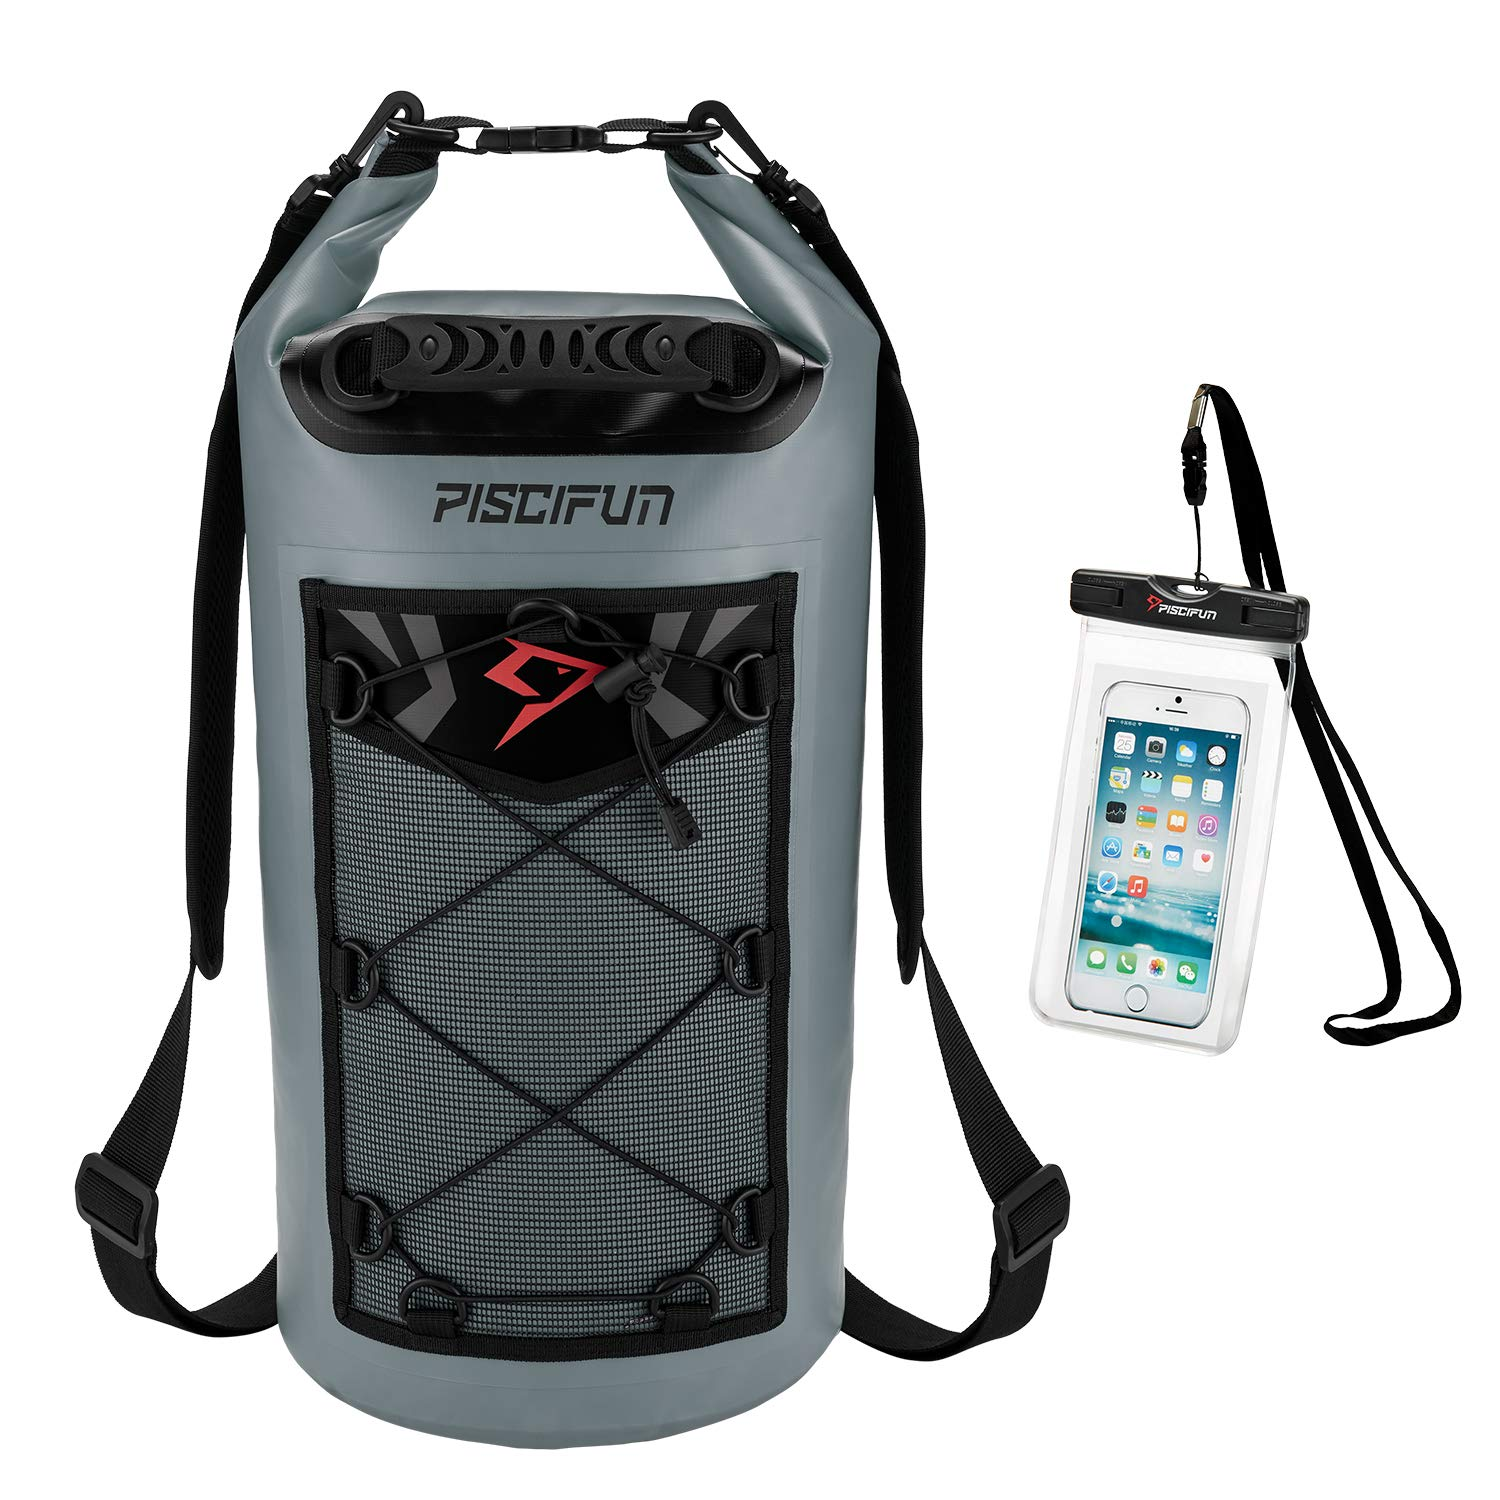 Piscifun Waterproof Dry Bag Backpack Floating Dry Backpack for Water Sports - Fishing Boating Kayaking Surfing Rafting Camping Gifts for Men and Women Free Waterproof Phone Case Grey 20L